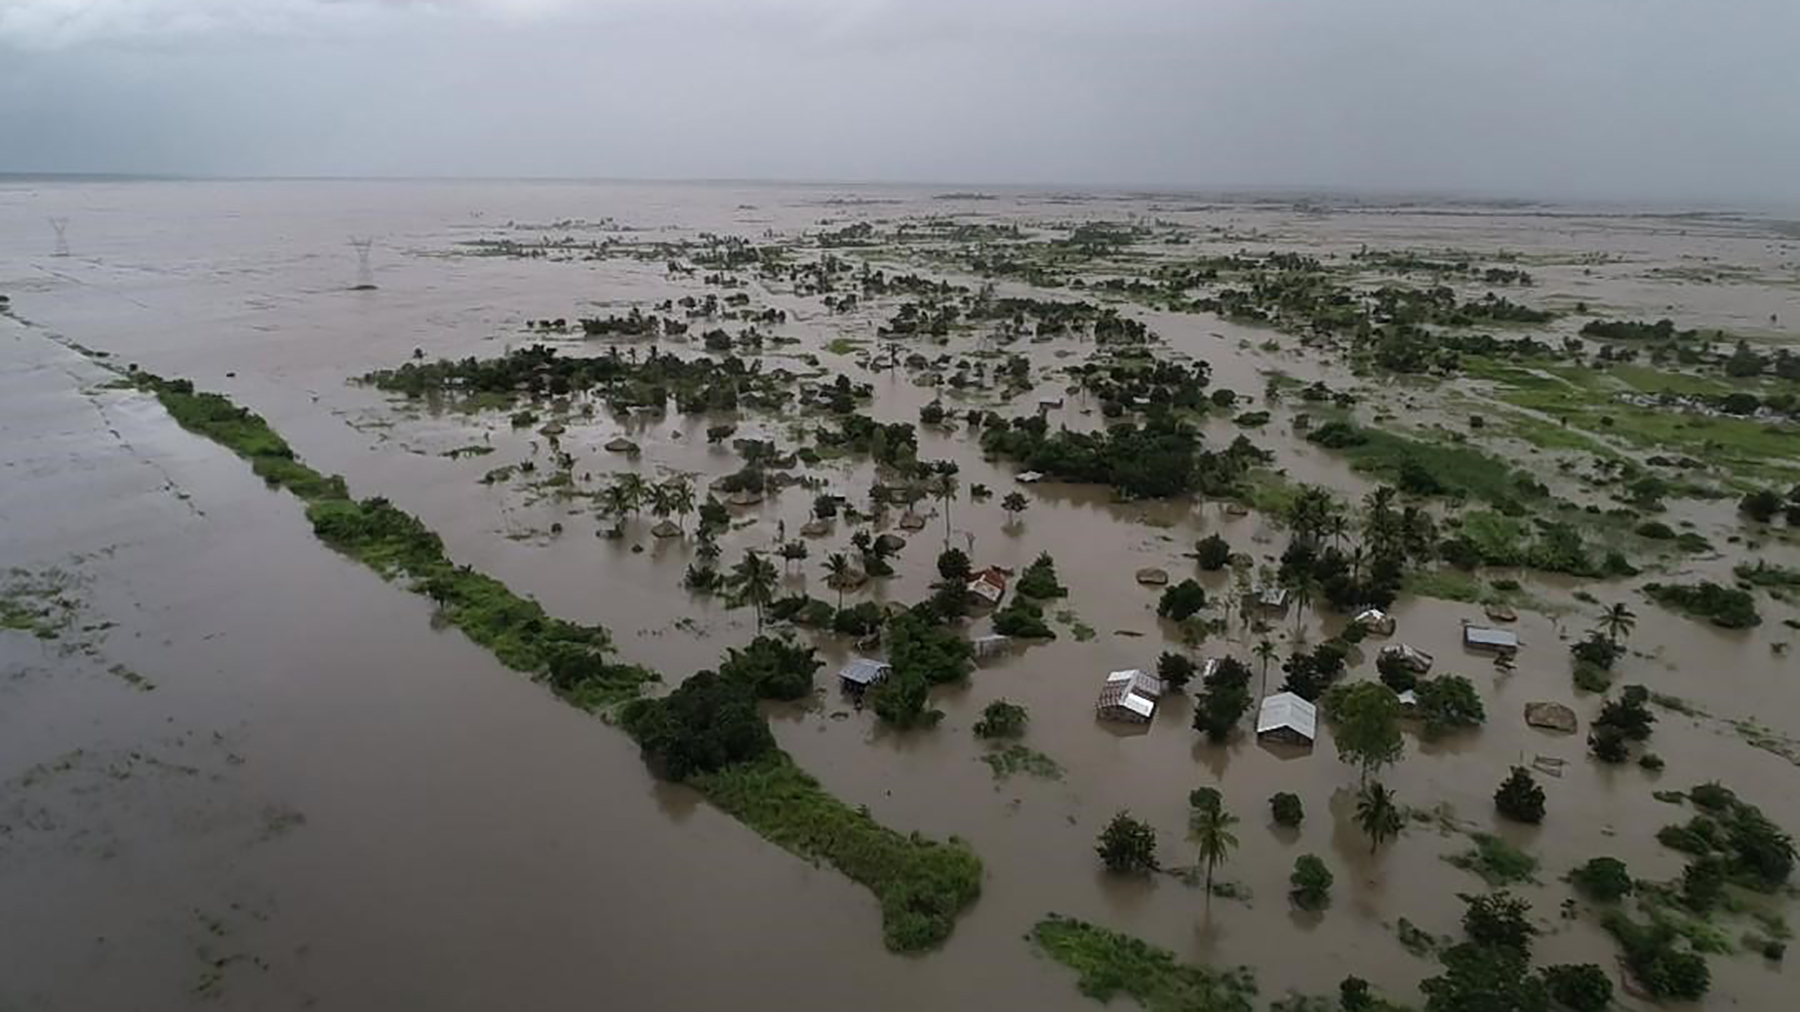 Disasters, like Cyclone Idai, pictured above in Mozambique in April, 2019, require increased response. Policymakers met in New York last week to strategize how to do just that in the decades to come.  (Photo courtesy of Zambezia Health Department)